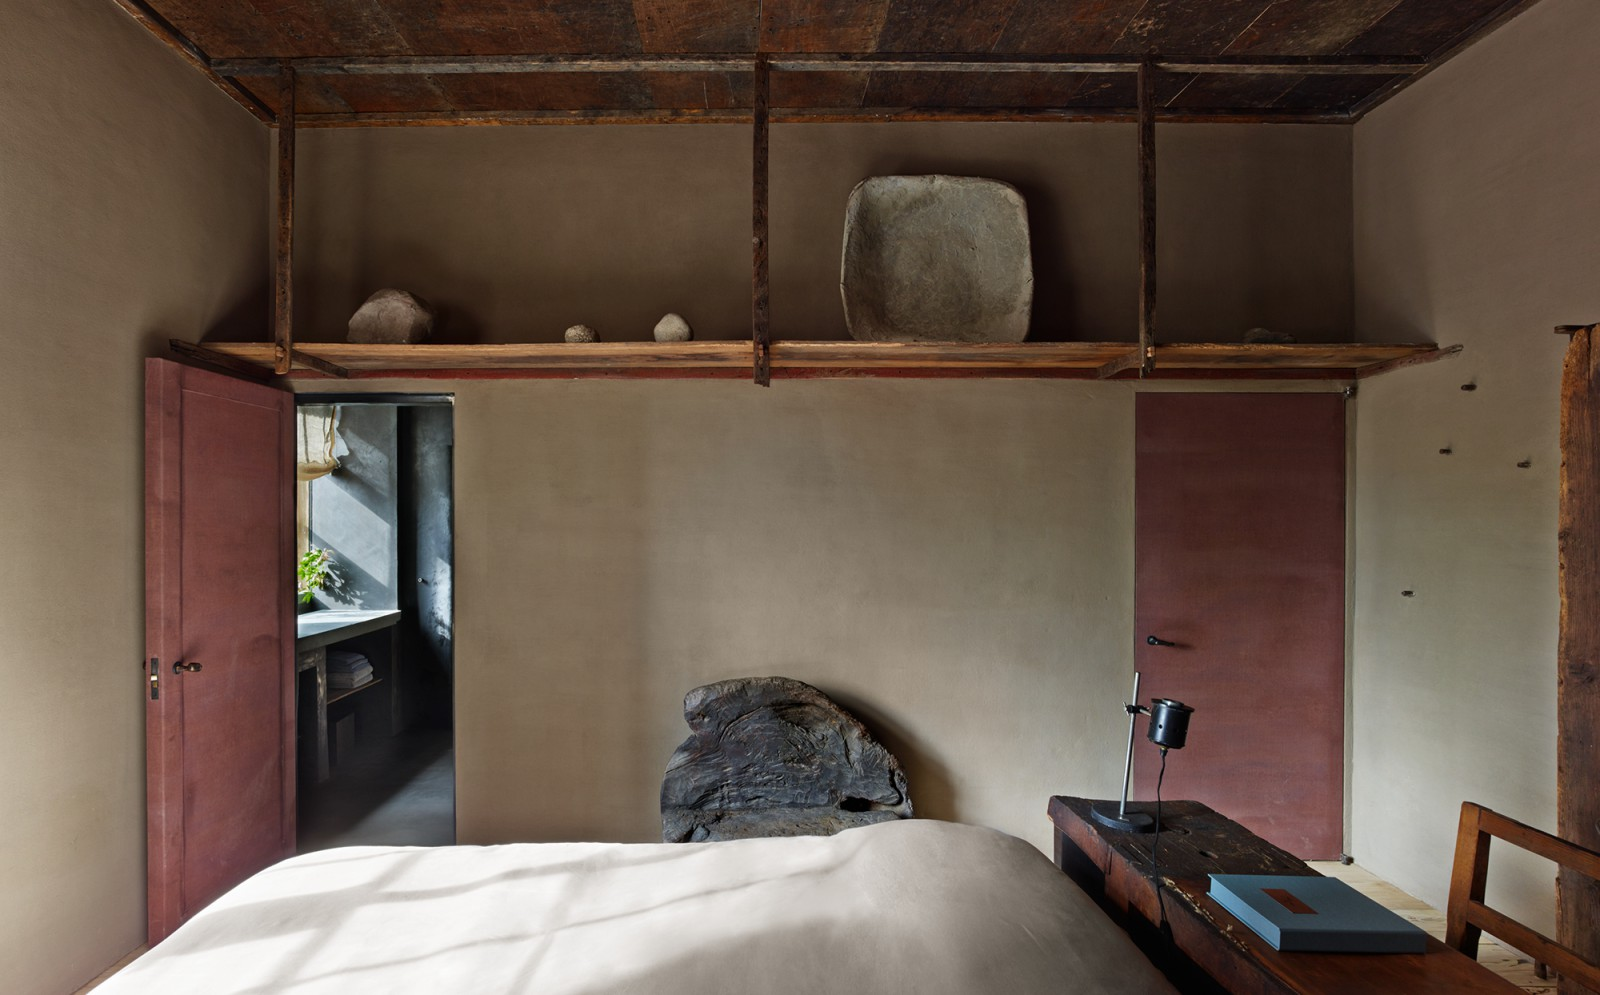 Wabi Sabi The Beauty Of Imperfection Connections By Finsa